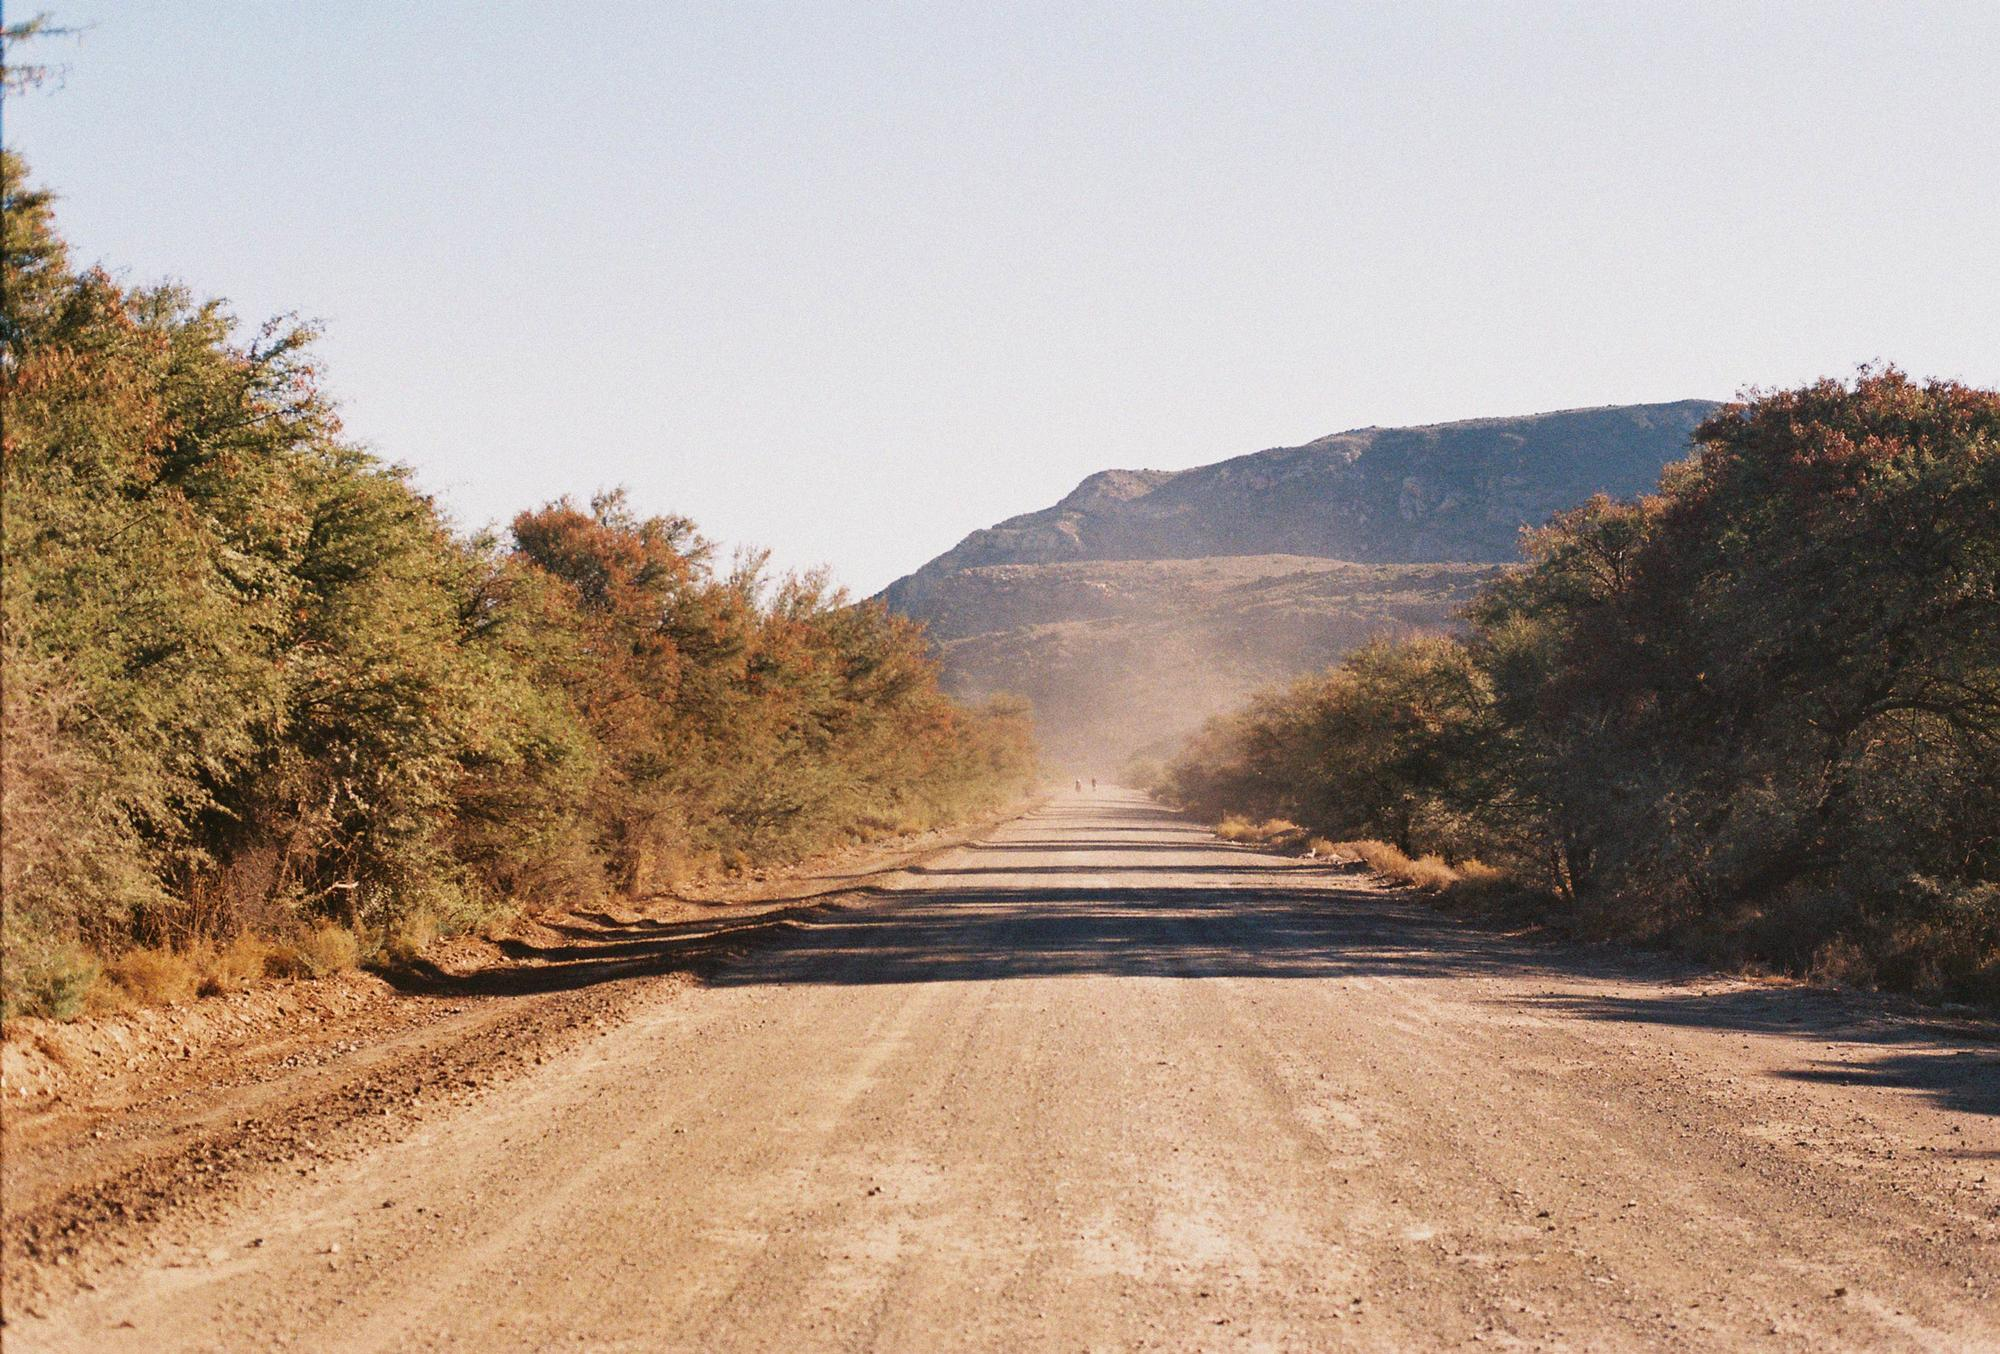 South African Dirt and the Karoobaix